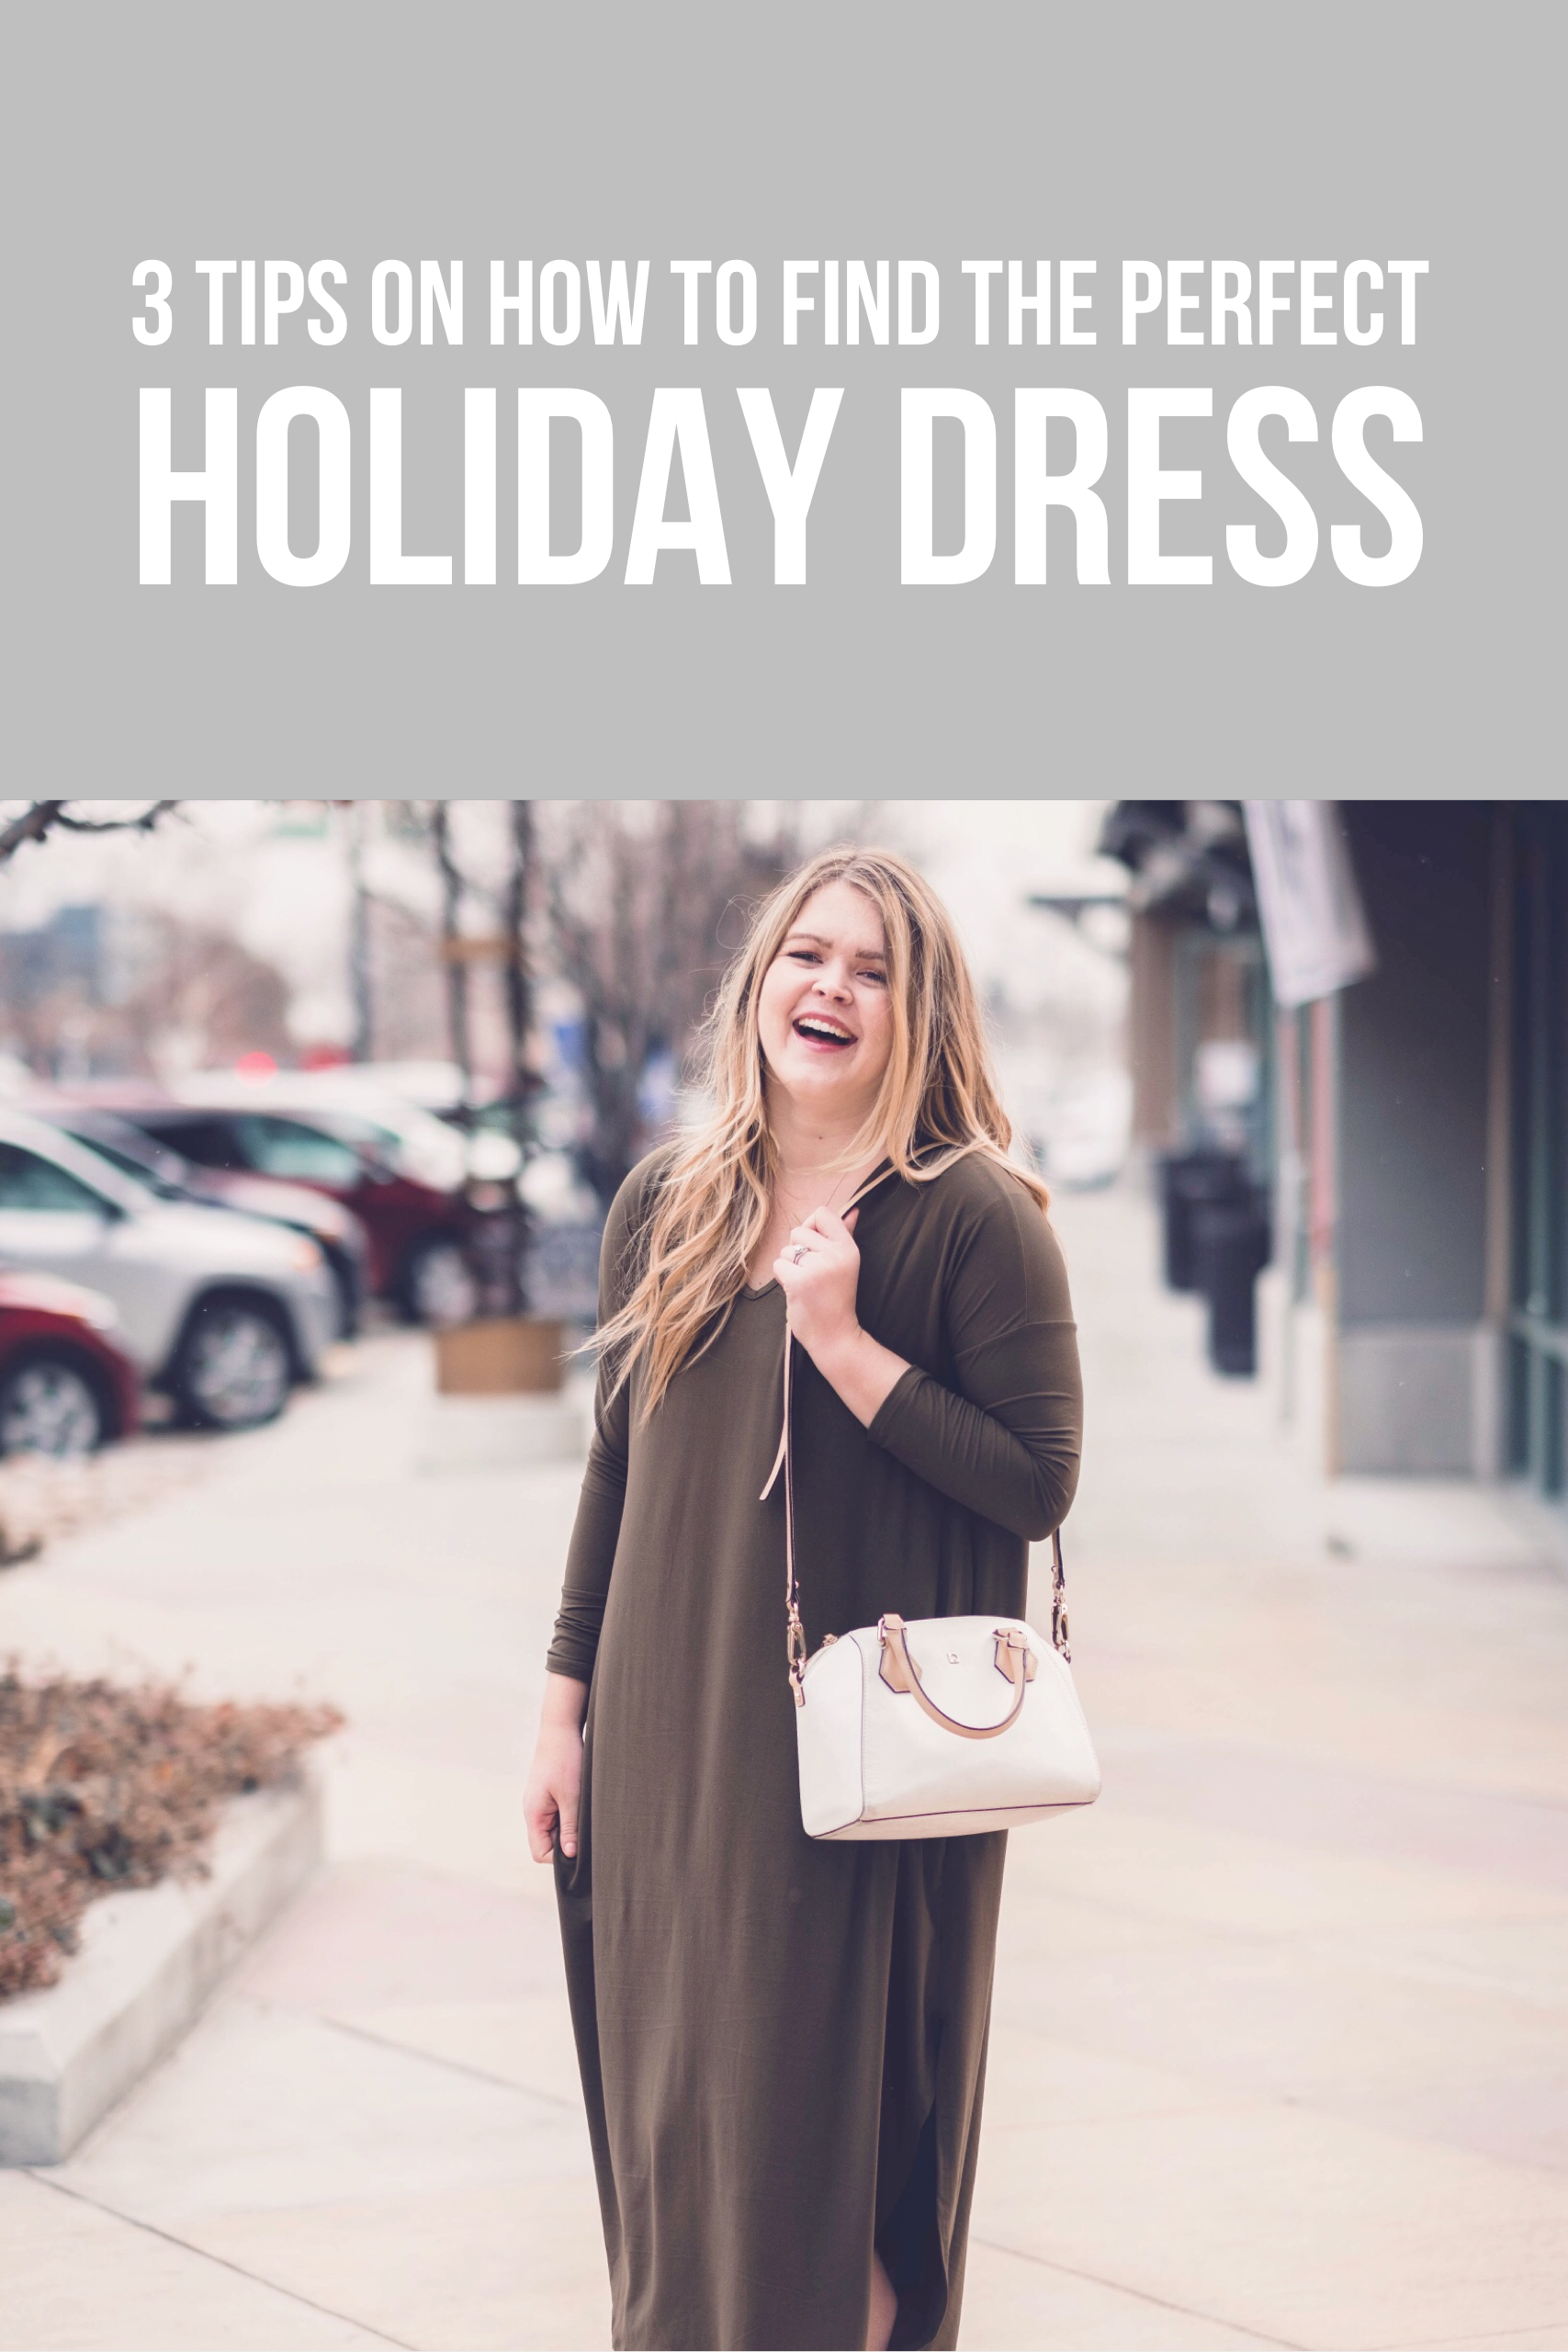 I wrote down some tips on how to find the perfect holiday dress. I love Christmas and the fun holiday spirit it has. I wanted to find a dress that is easy to be casual or more formal depending on what I paired with it. I found one that is green, but I would have been happy with my red one too! The best part: it's modest!